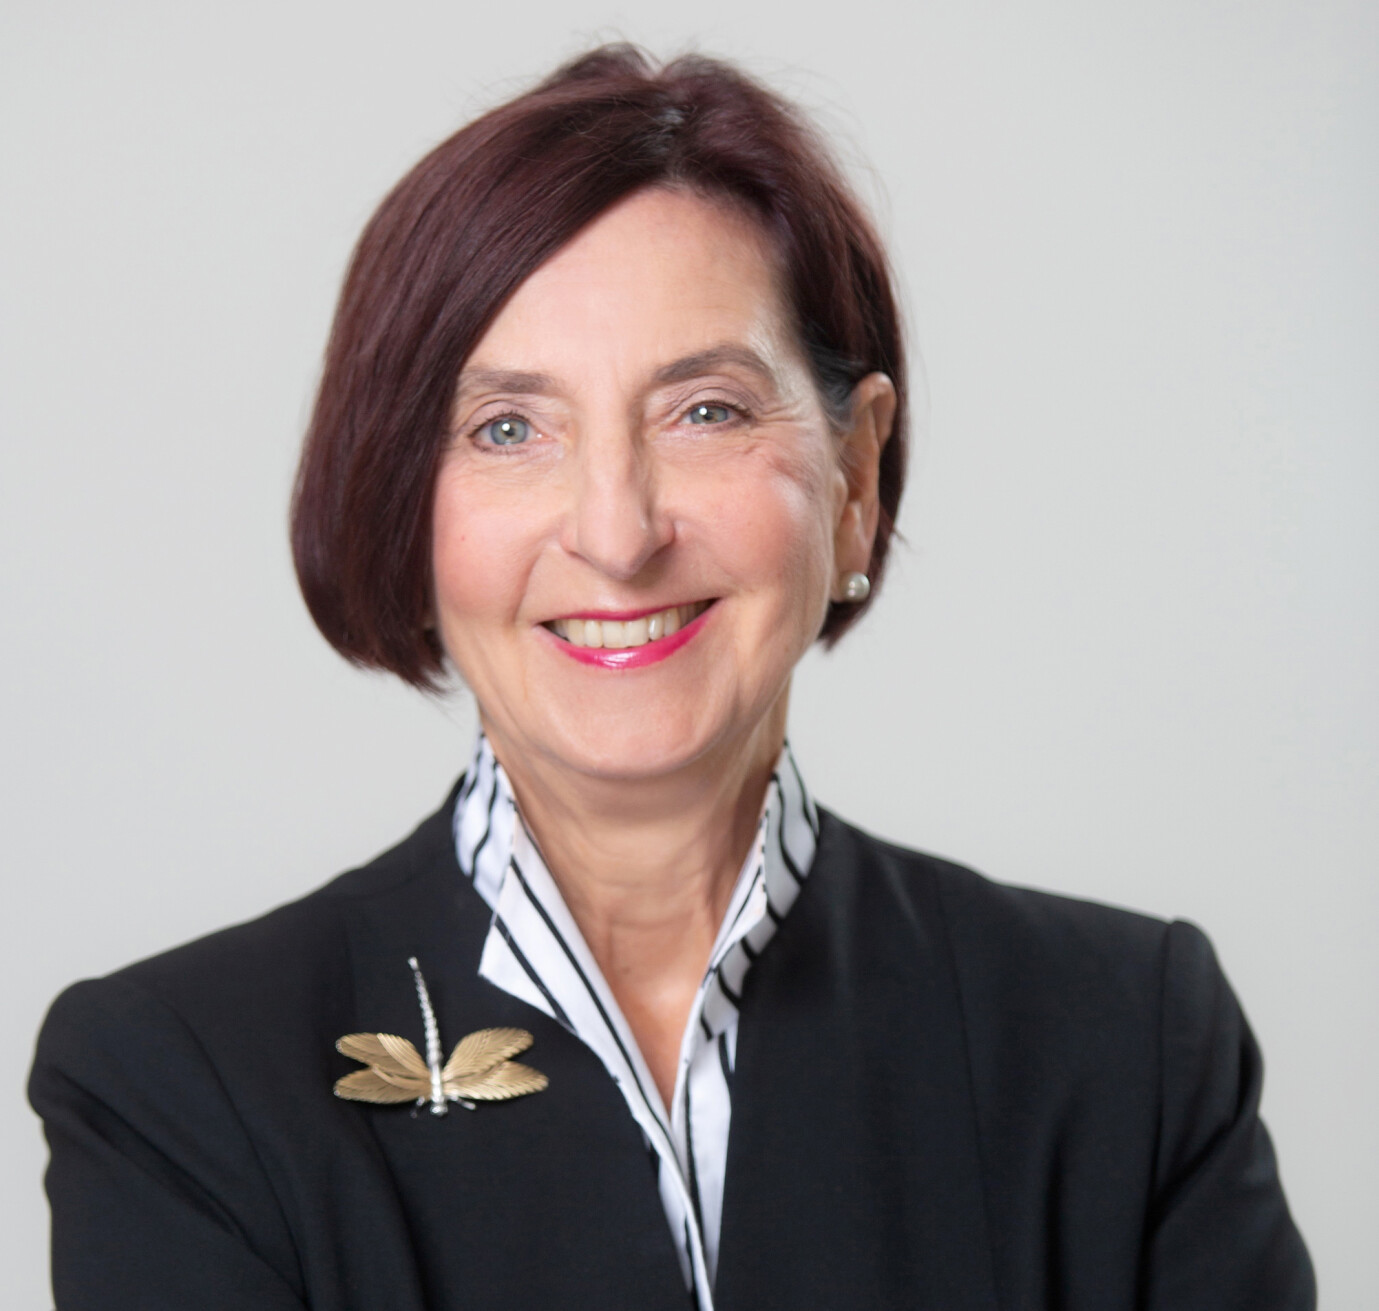 March Quarterly Breakfast Featuring Birgit Klohs, Past President and CEO of The Right Place